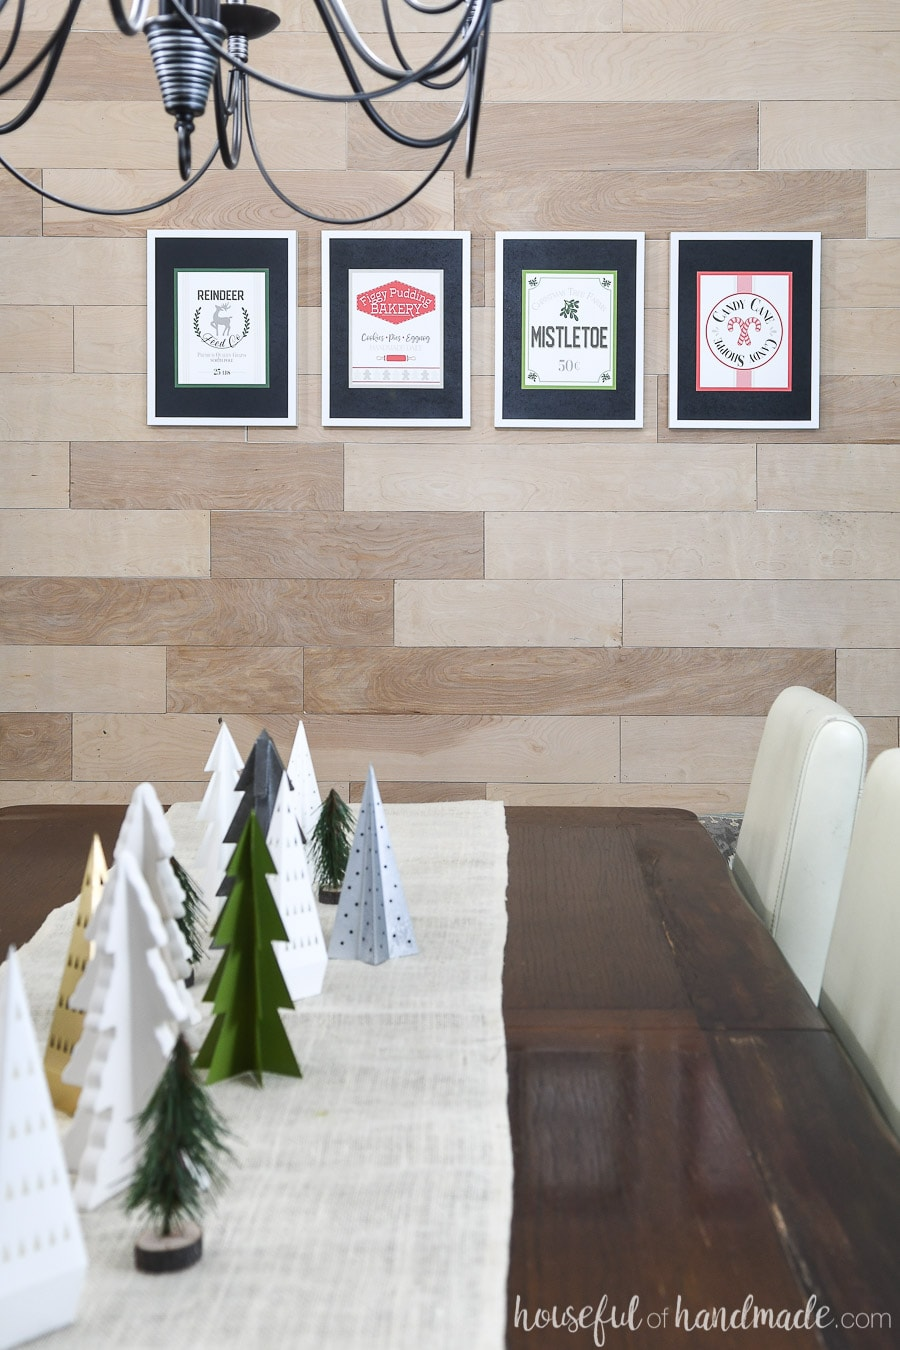 Four printable Christmas signs hanging in white frames on a wood wall.